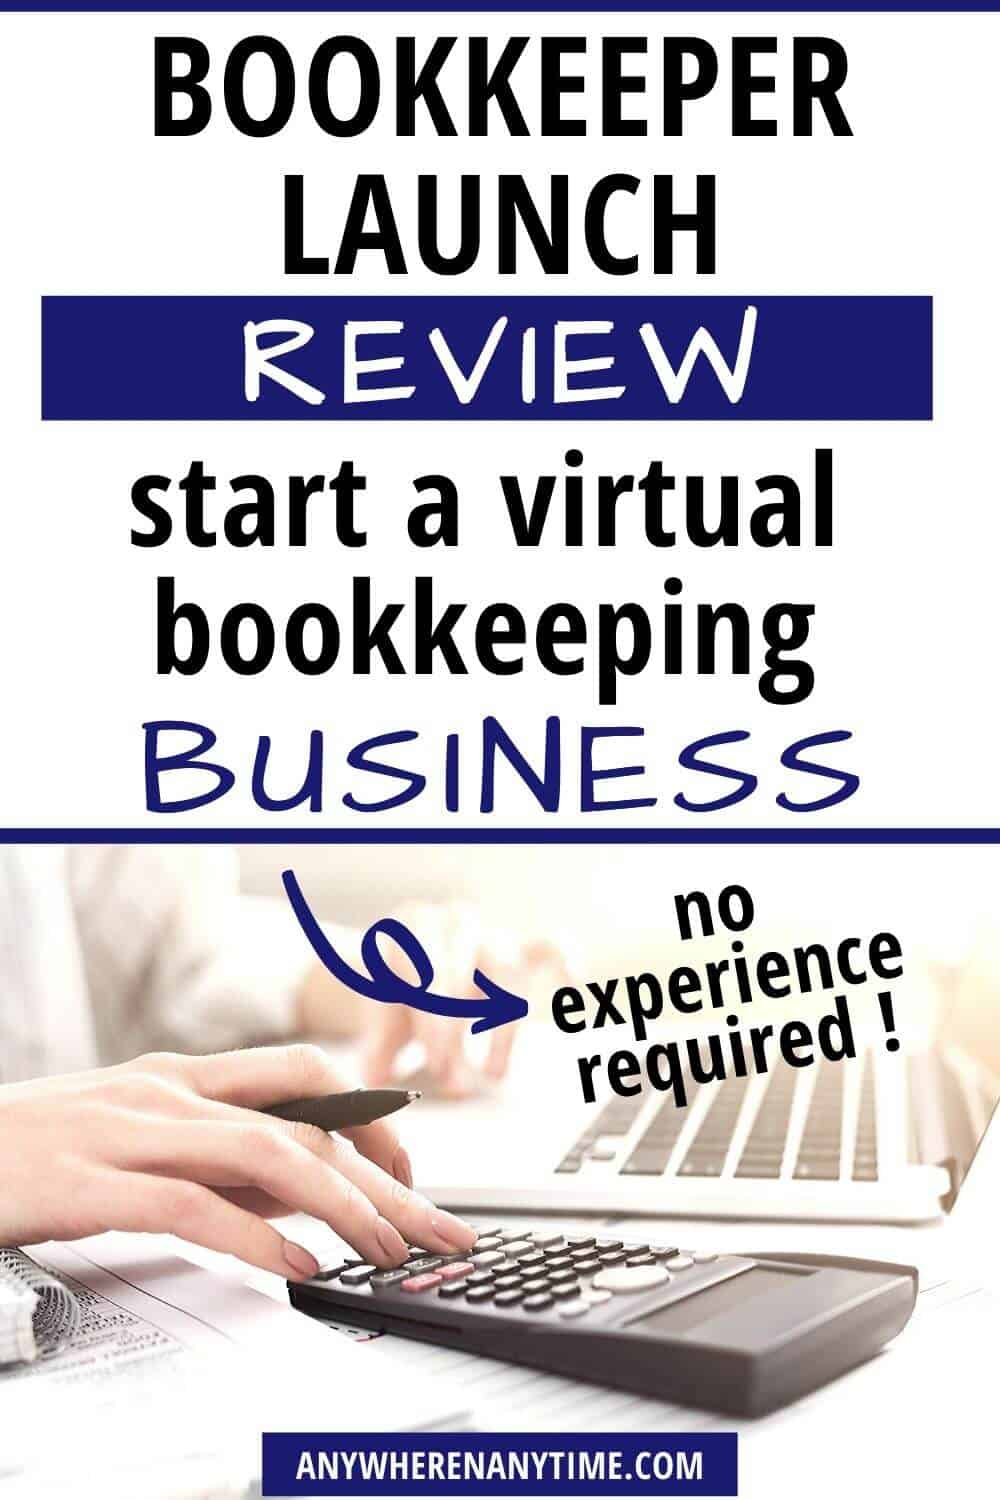 Bookkeeper Launch Review - Start a virtual bookkeeping business